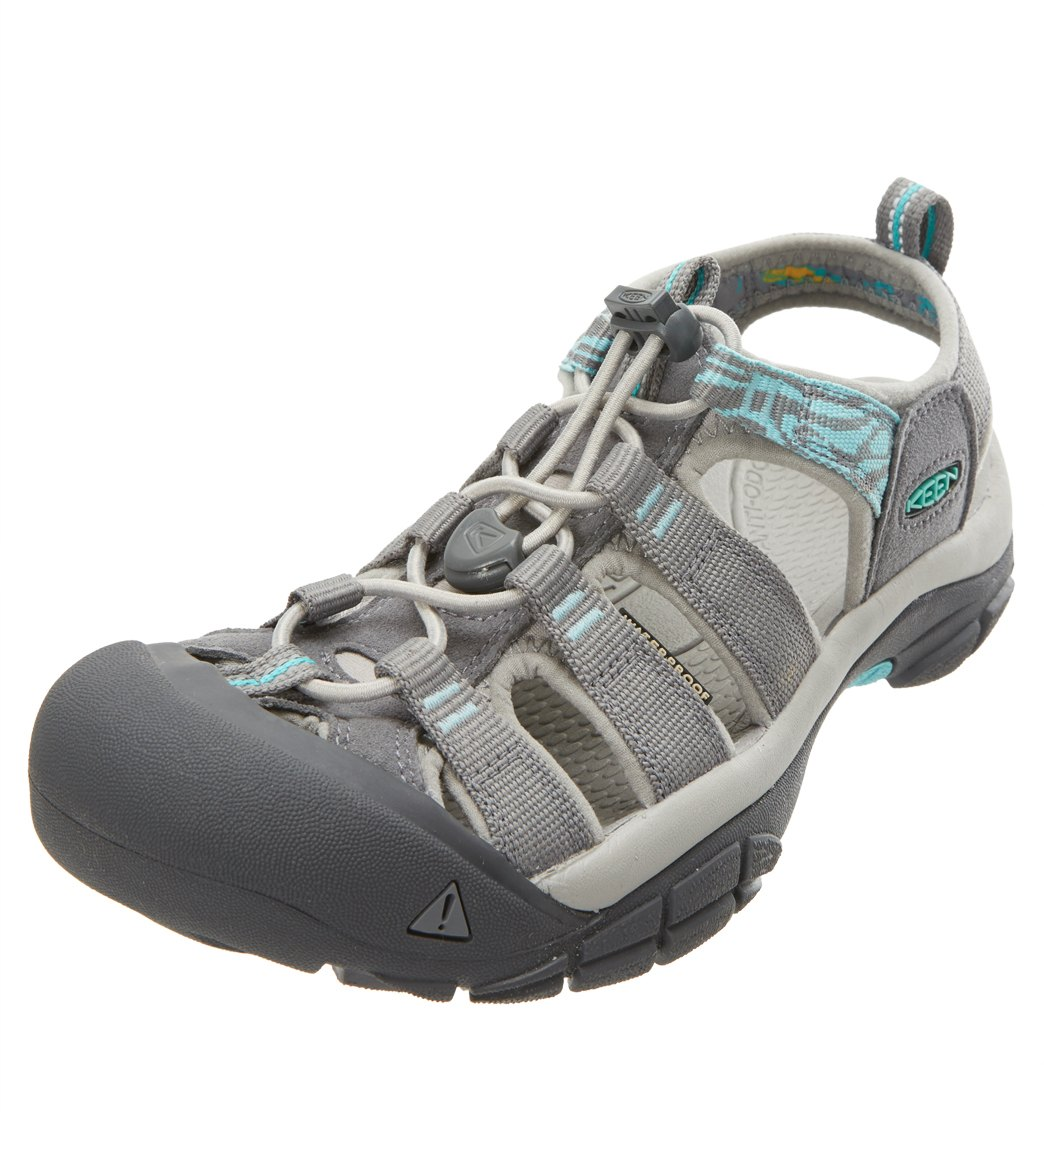 af1a034b6787 Keen Women s Newport Hydro Water Shoe at SwimOutlet.com - Free Shipping